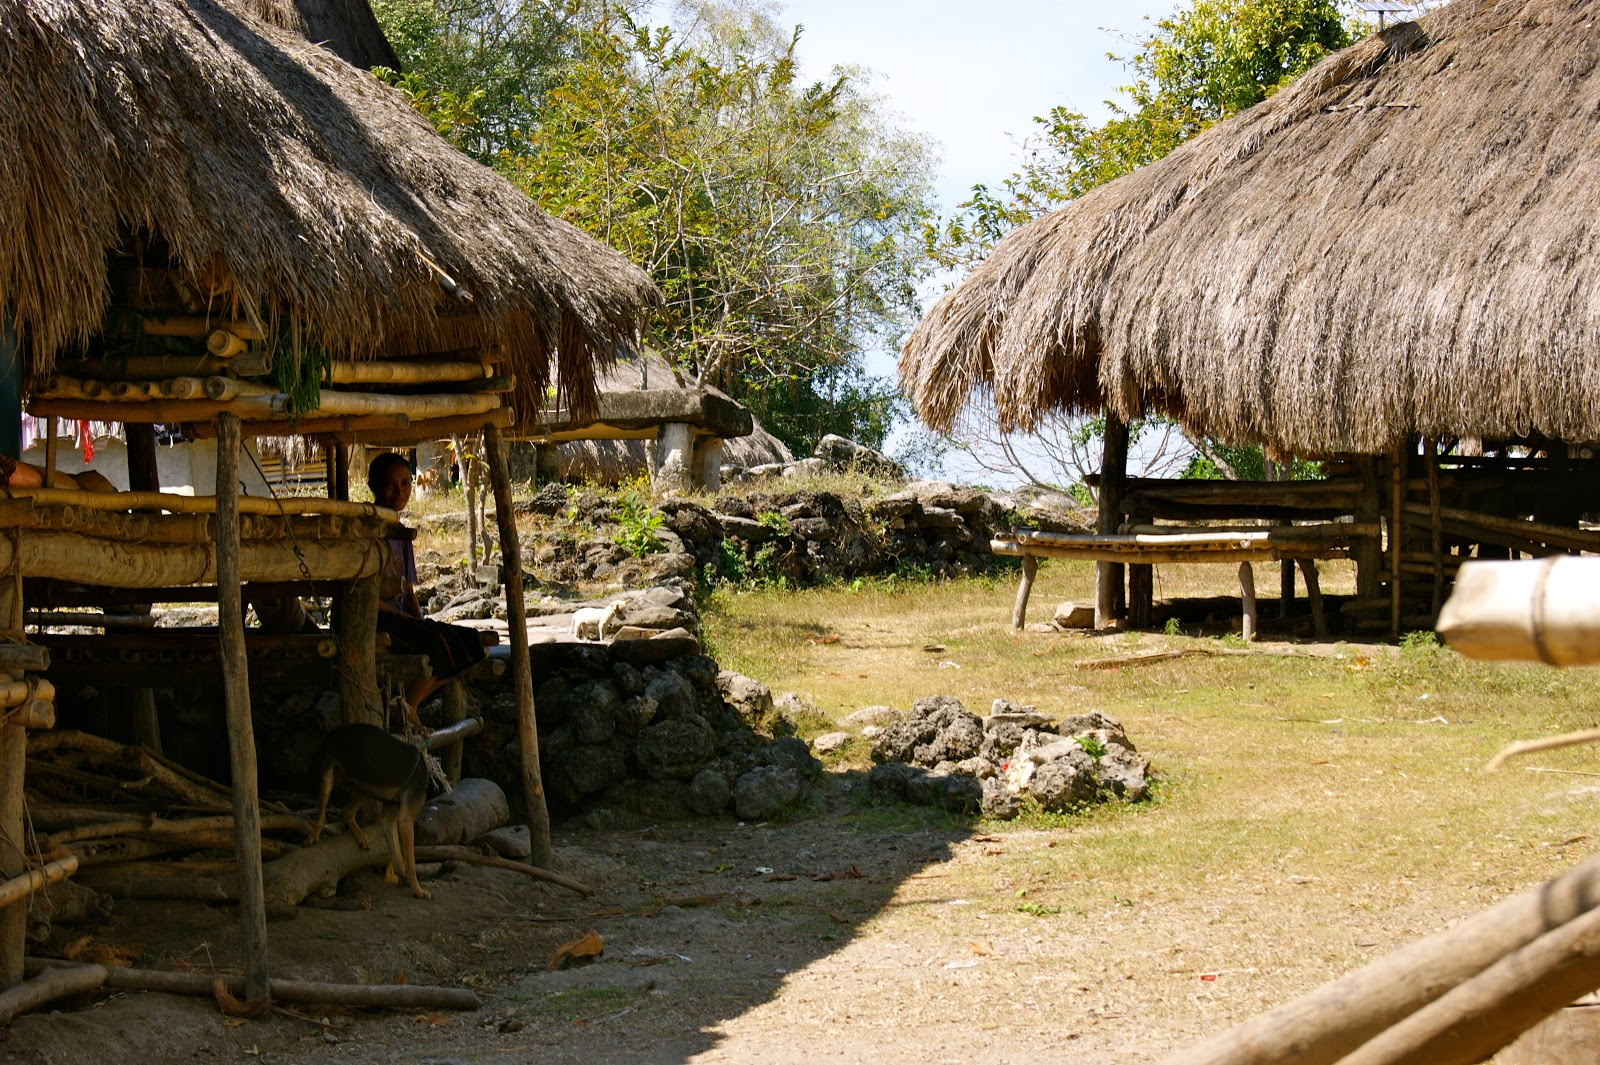 Traditional houses in a Sumbanese village.